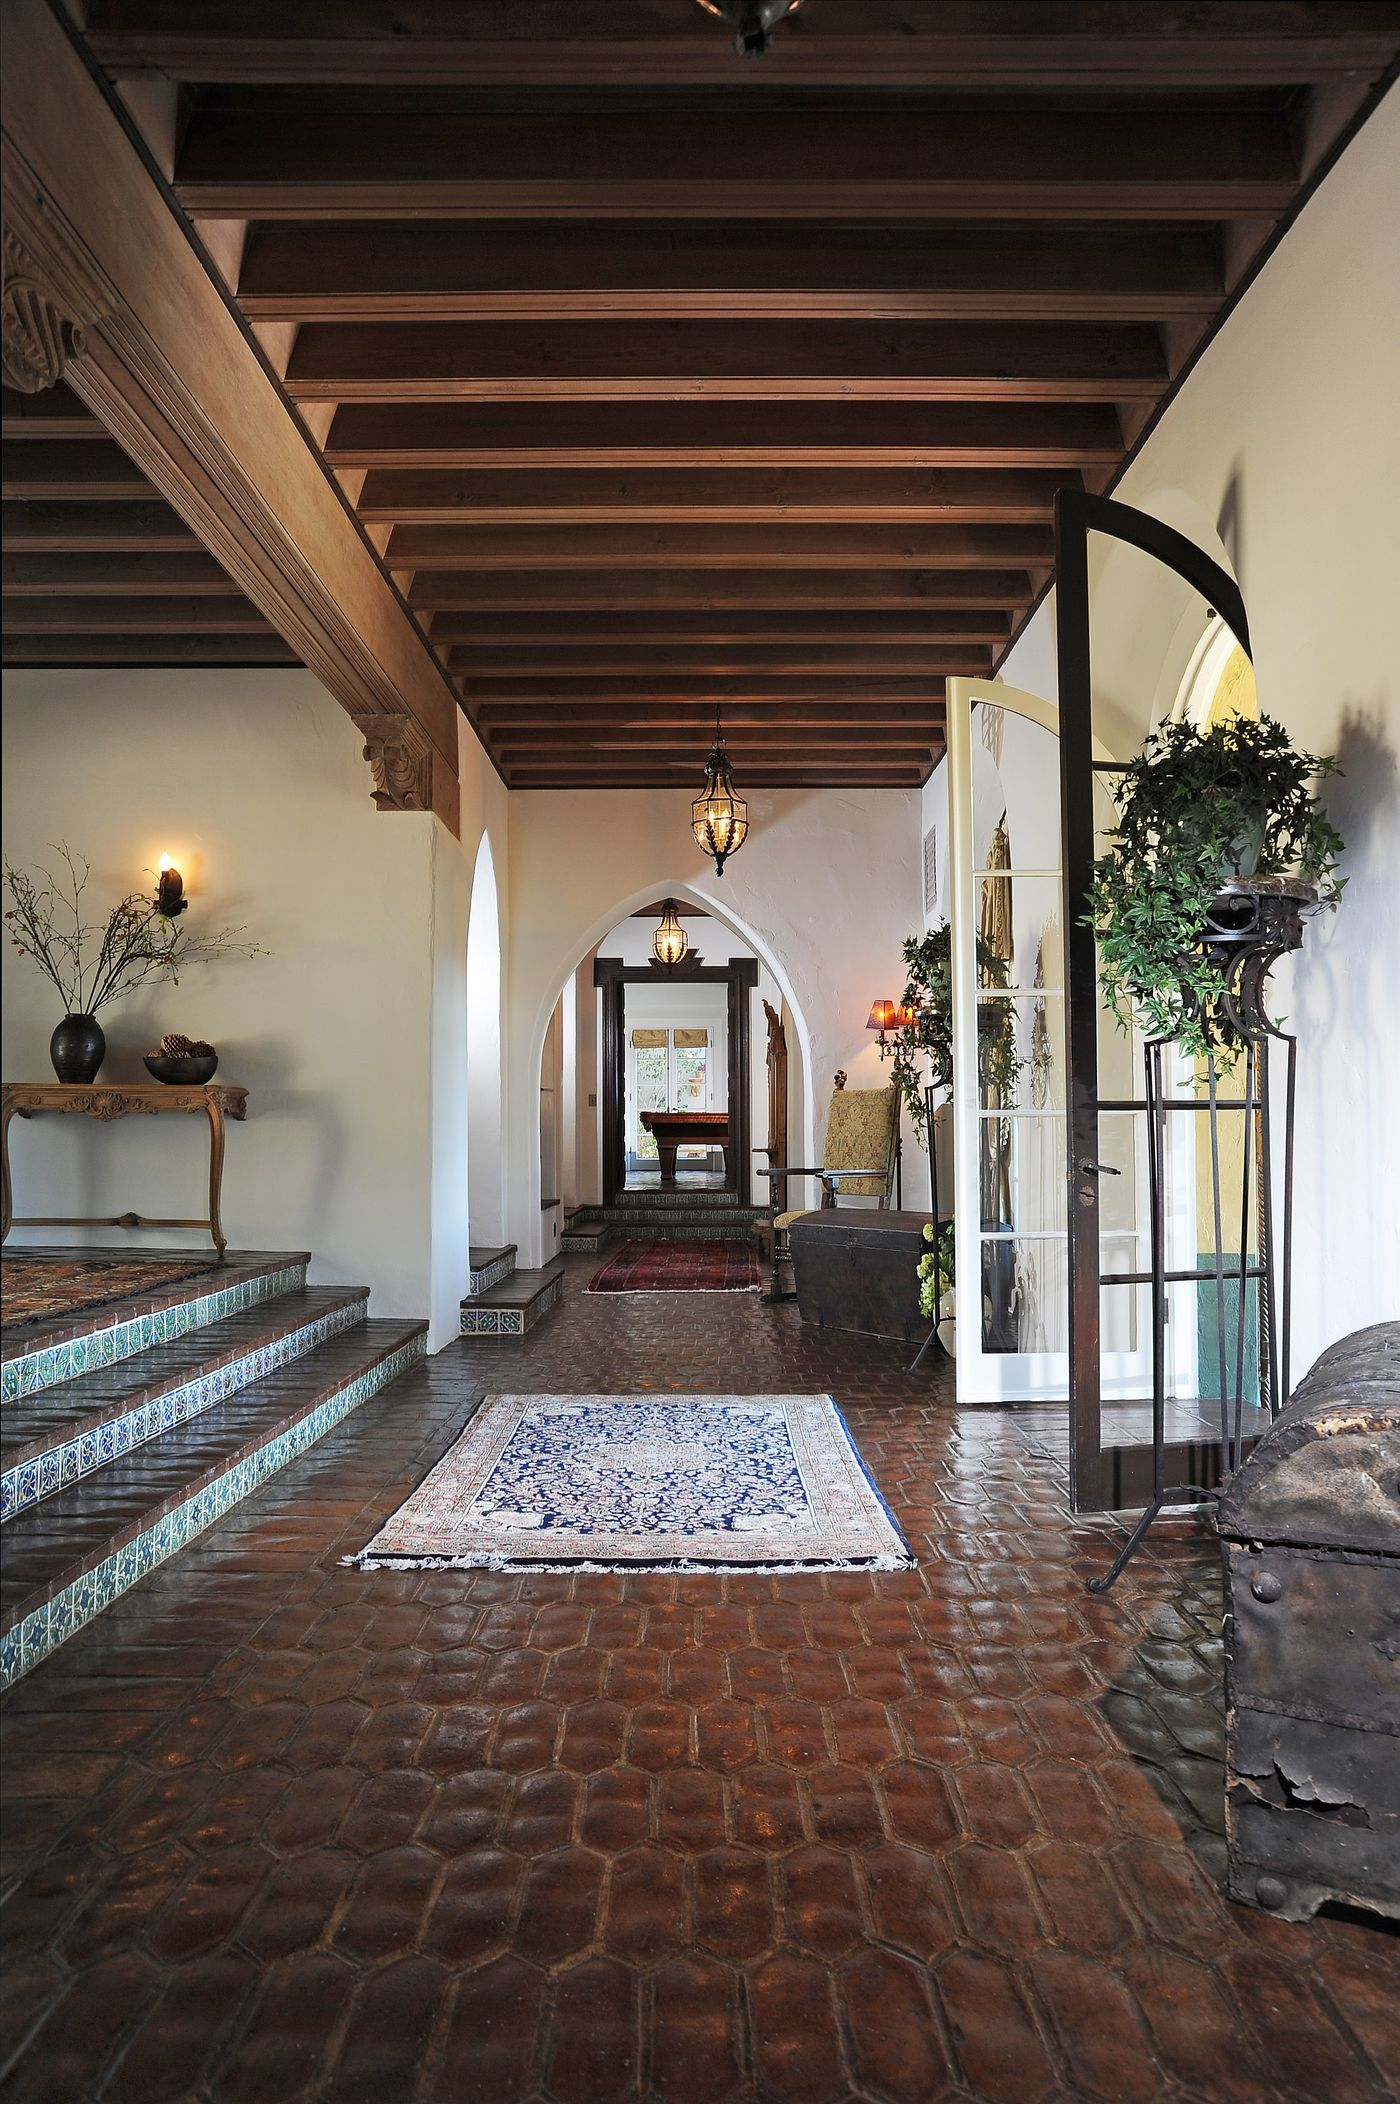 Captivating Stunning Spanish Revival Is SoCal Living At Its Finest For $17.9M   Curbed